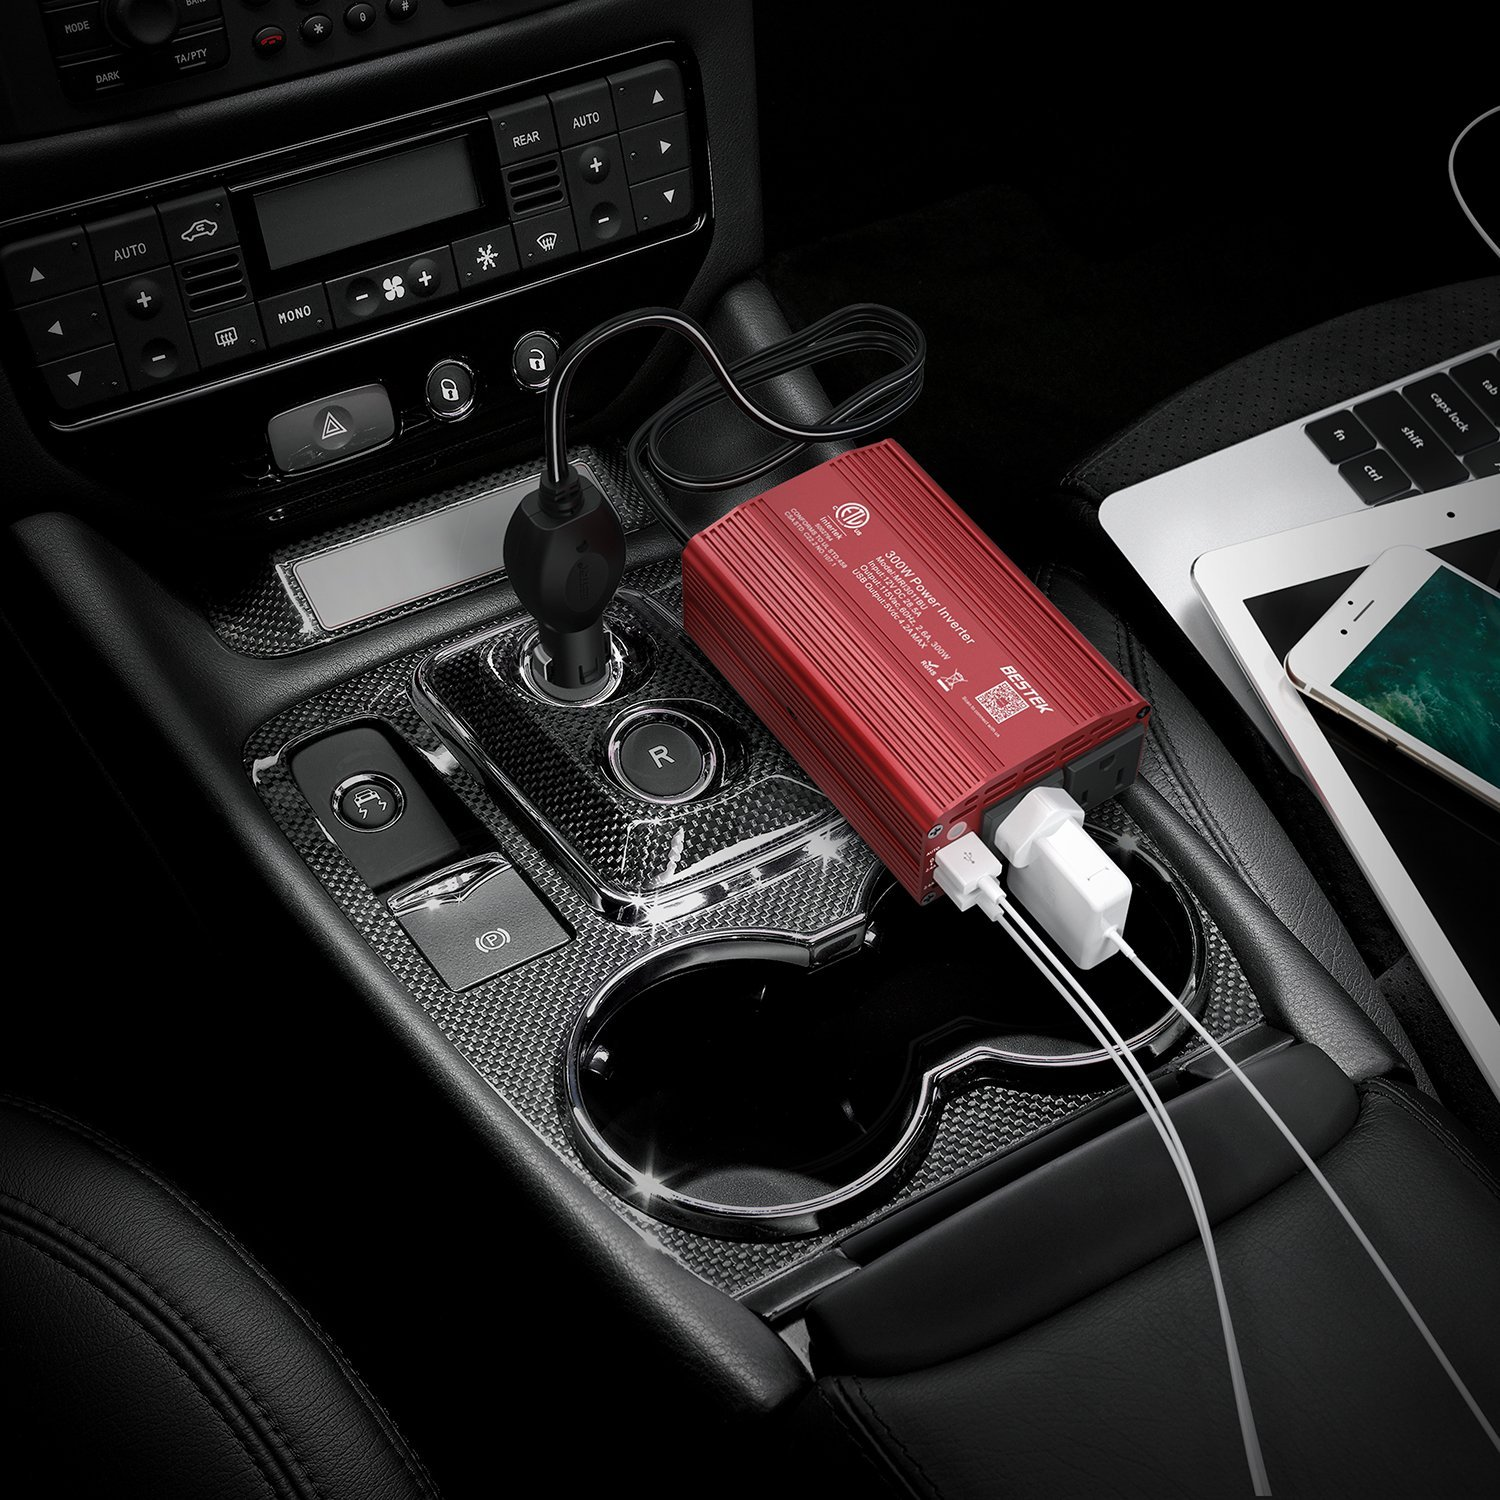 This $30 box lets you plug in a phone, laptop, or even a TV in your car